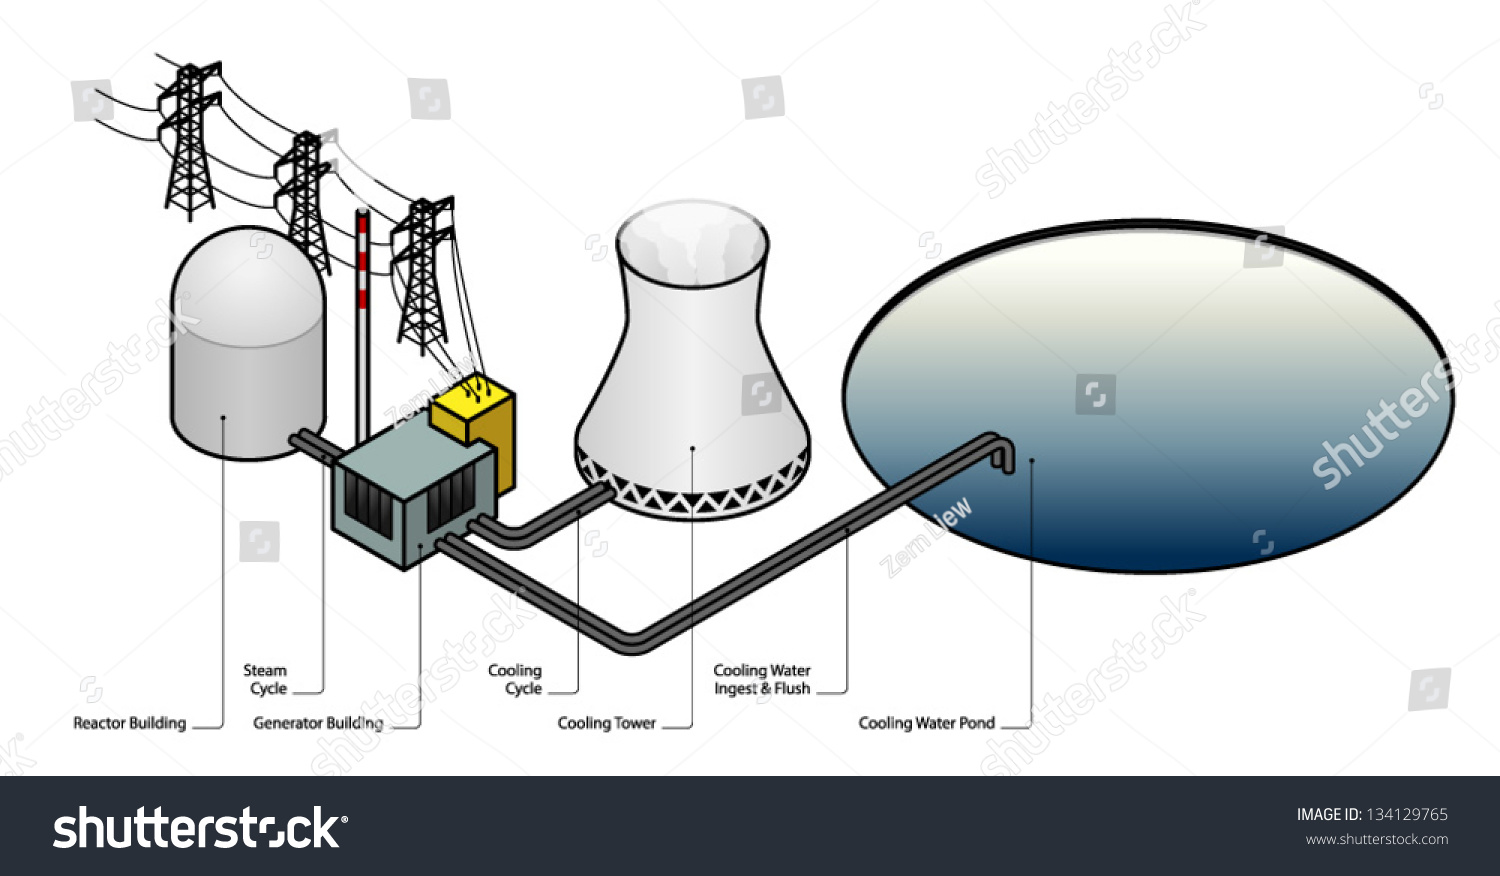 Diagram of a nuclear power plant.